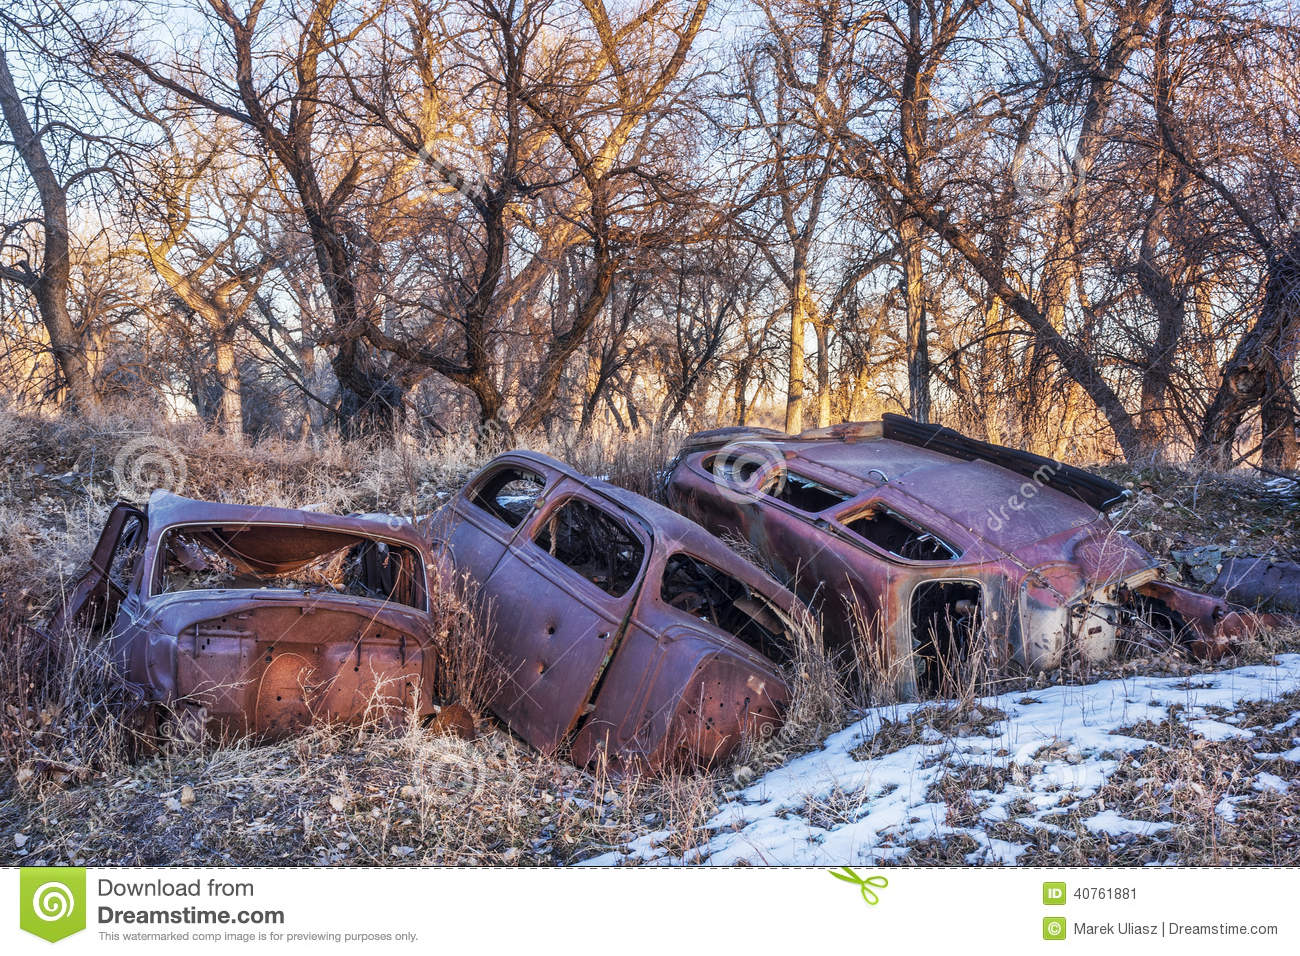 Sell Junk Cars >> Rusty junk cars stock image. Image of vintage, pollution ...